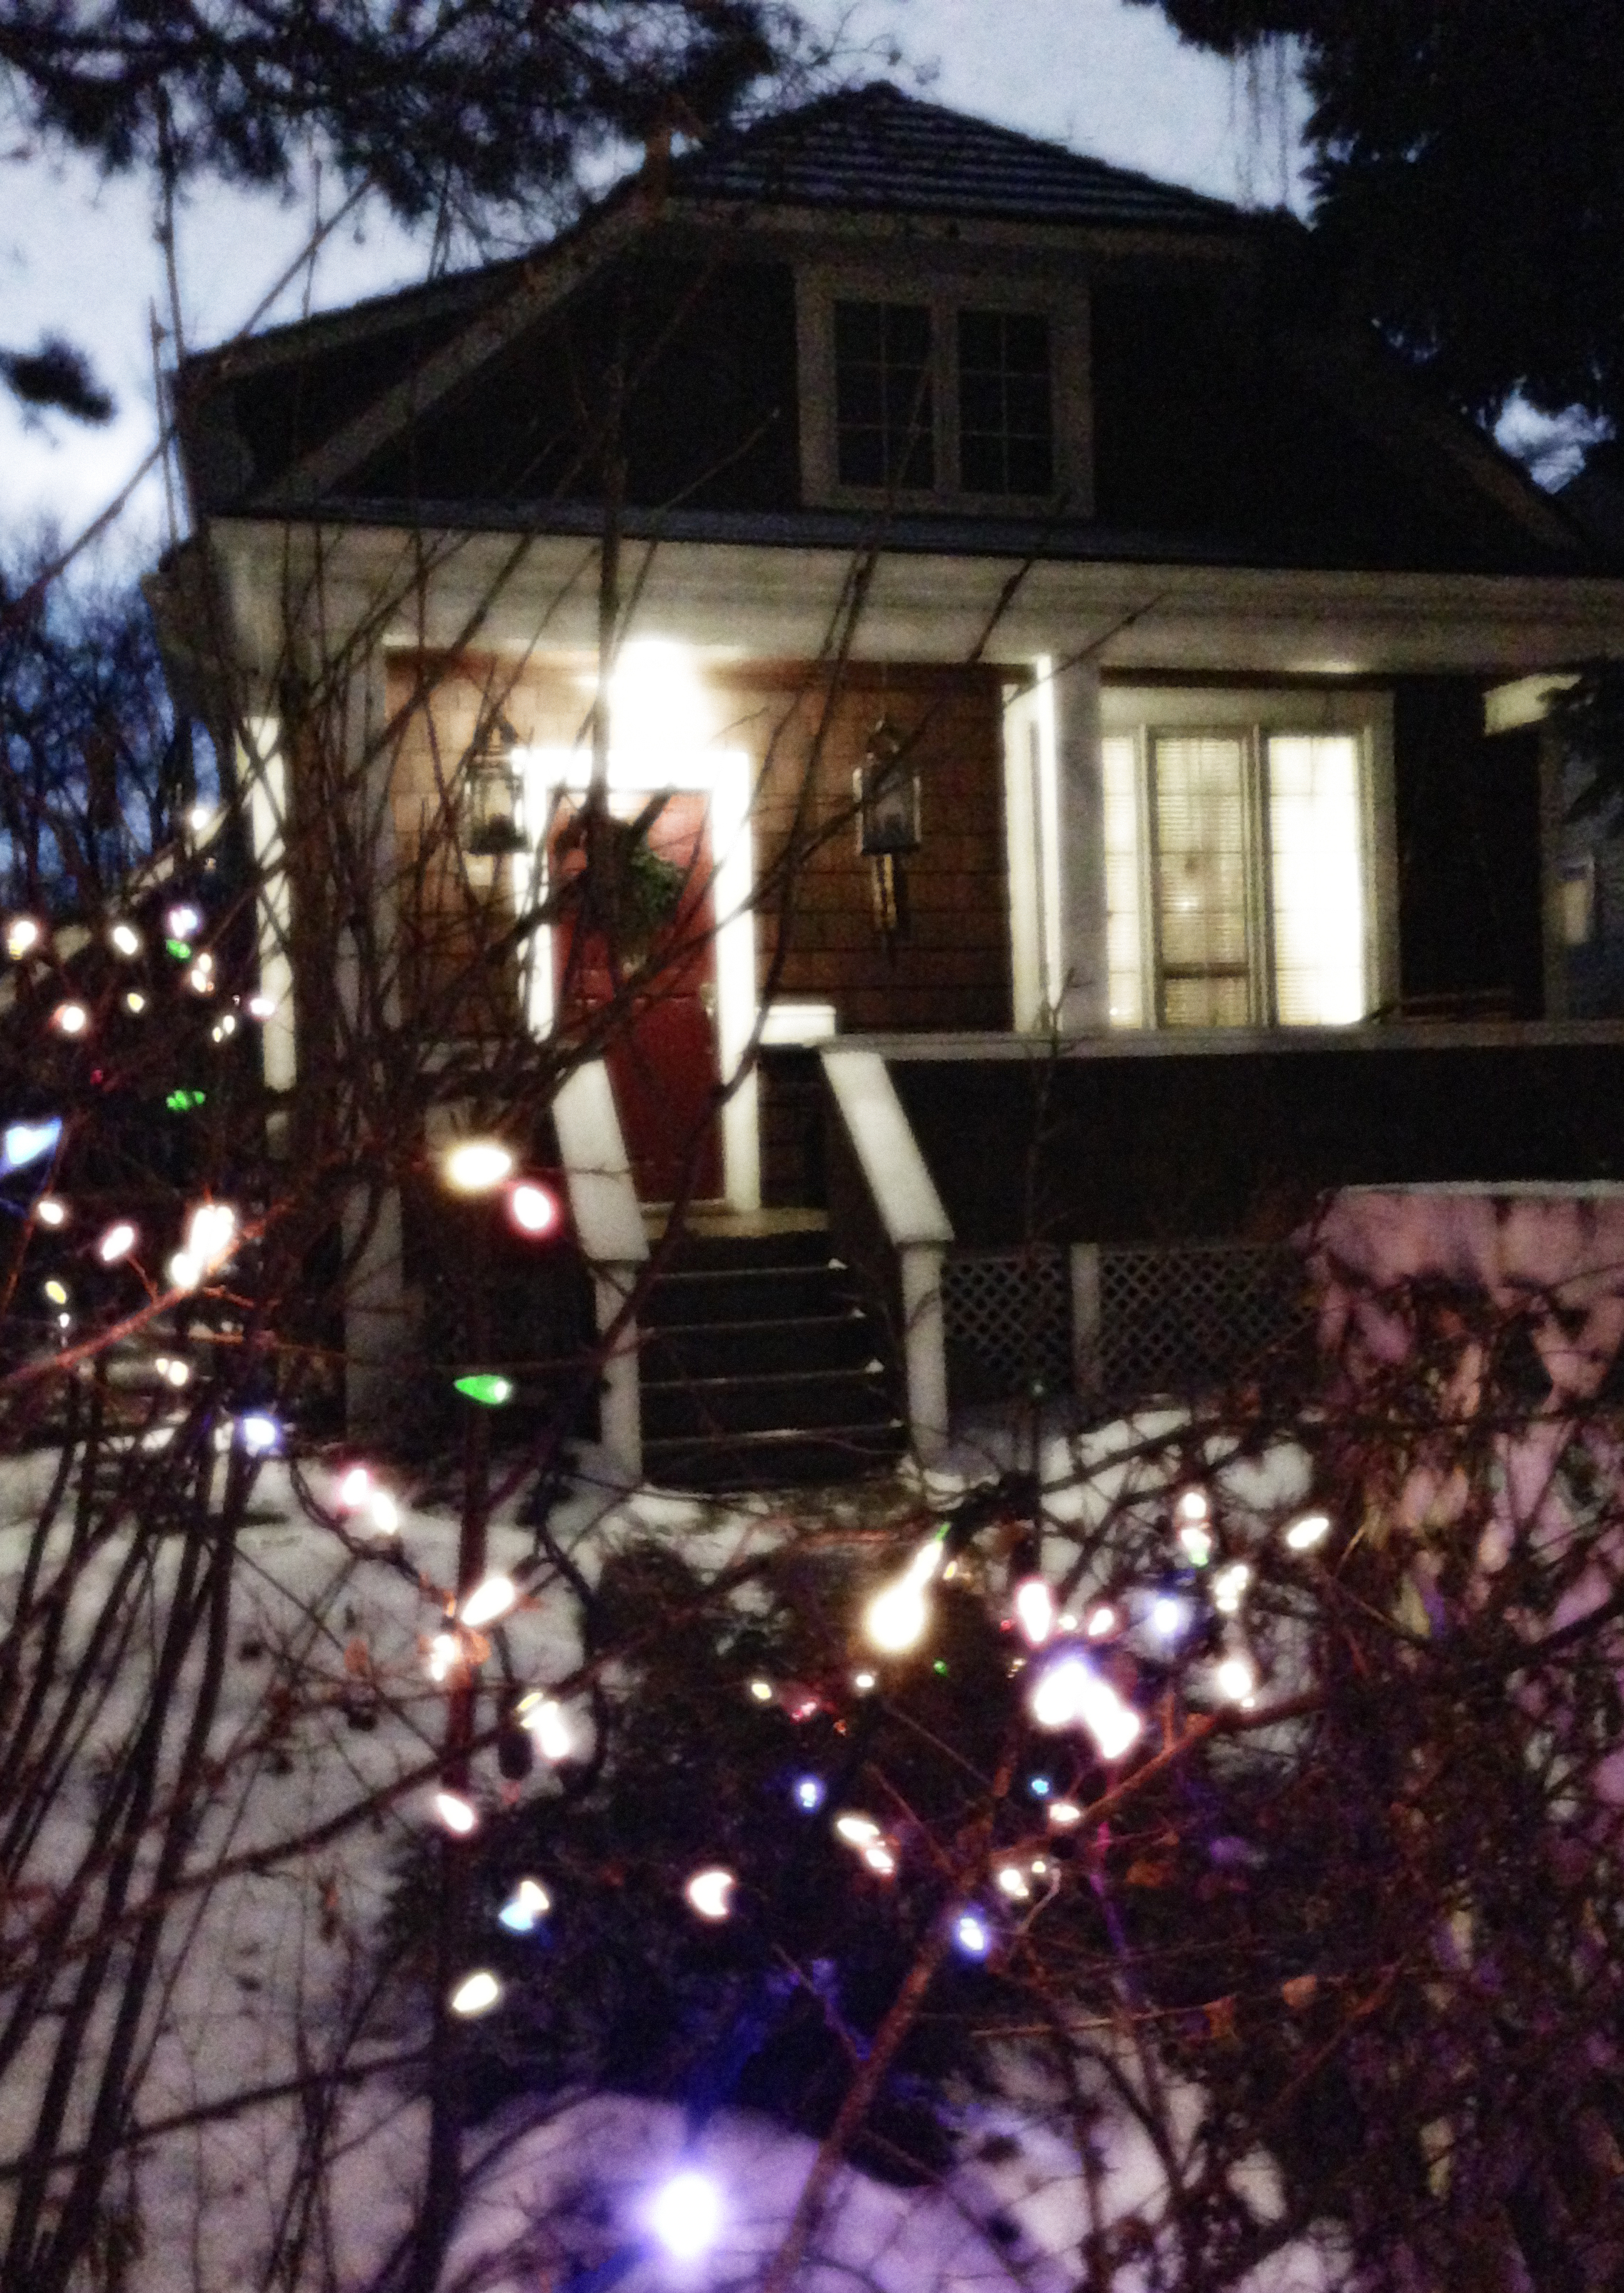 Our House -23℃, VHS 2015, posted January 4, wk 28